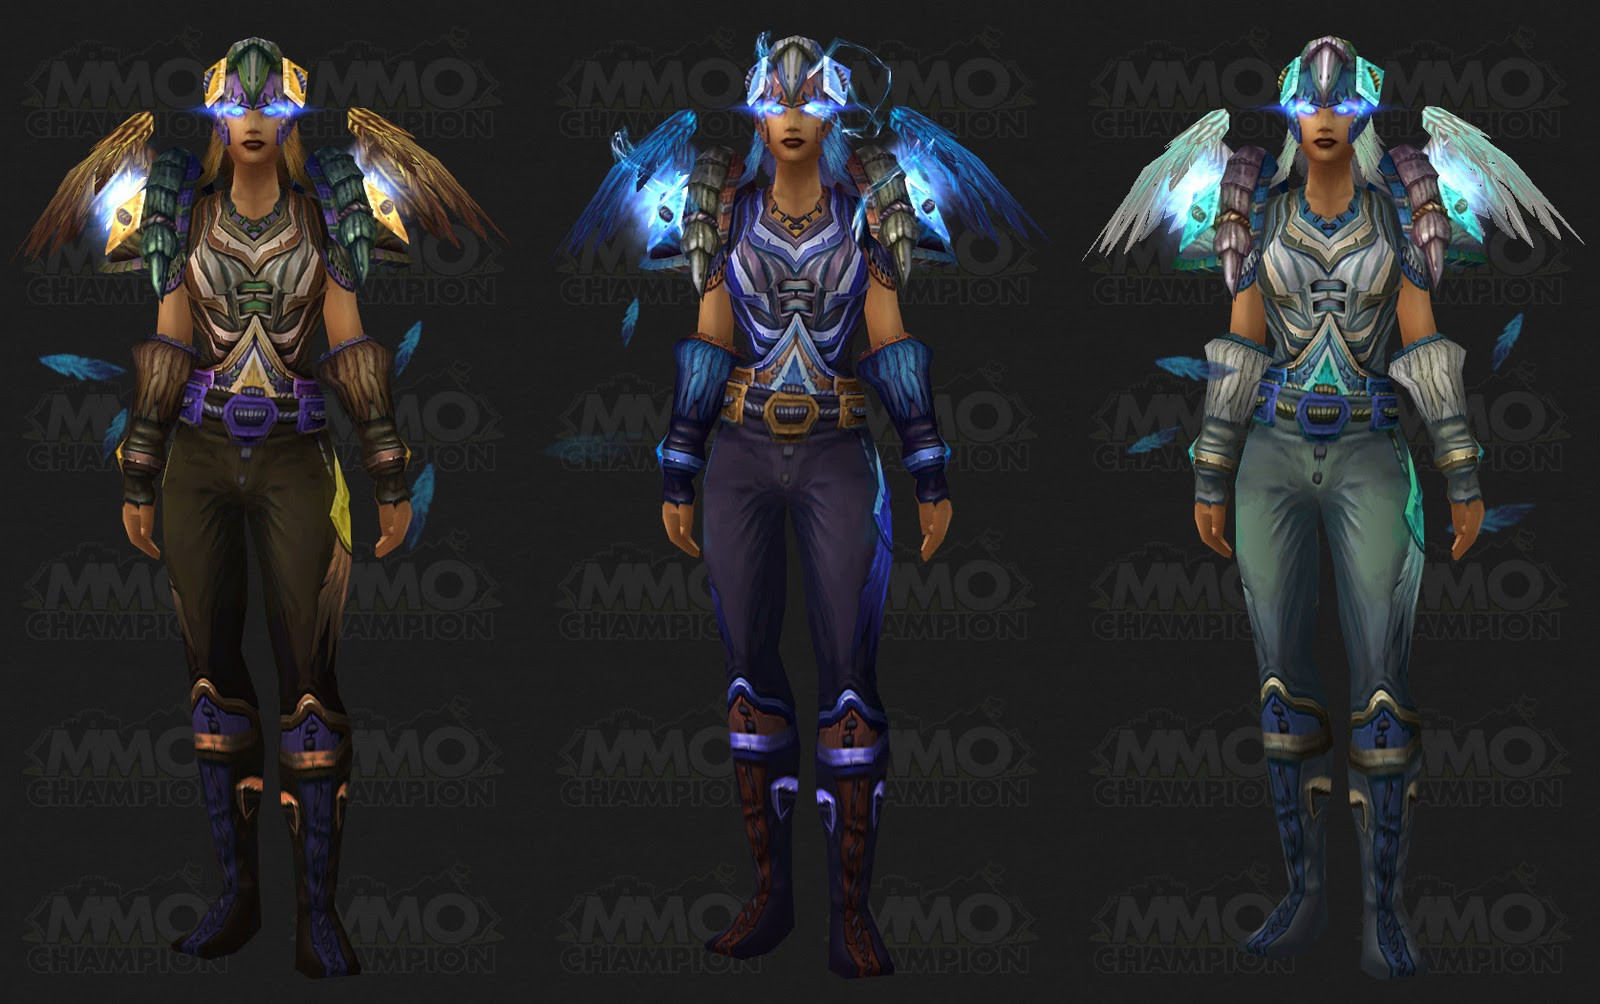 Gives off i can t wait to get my druid into this tier set no lies